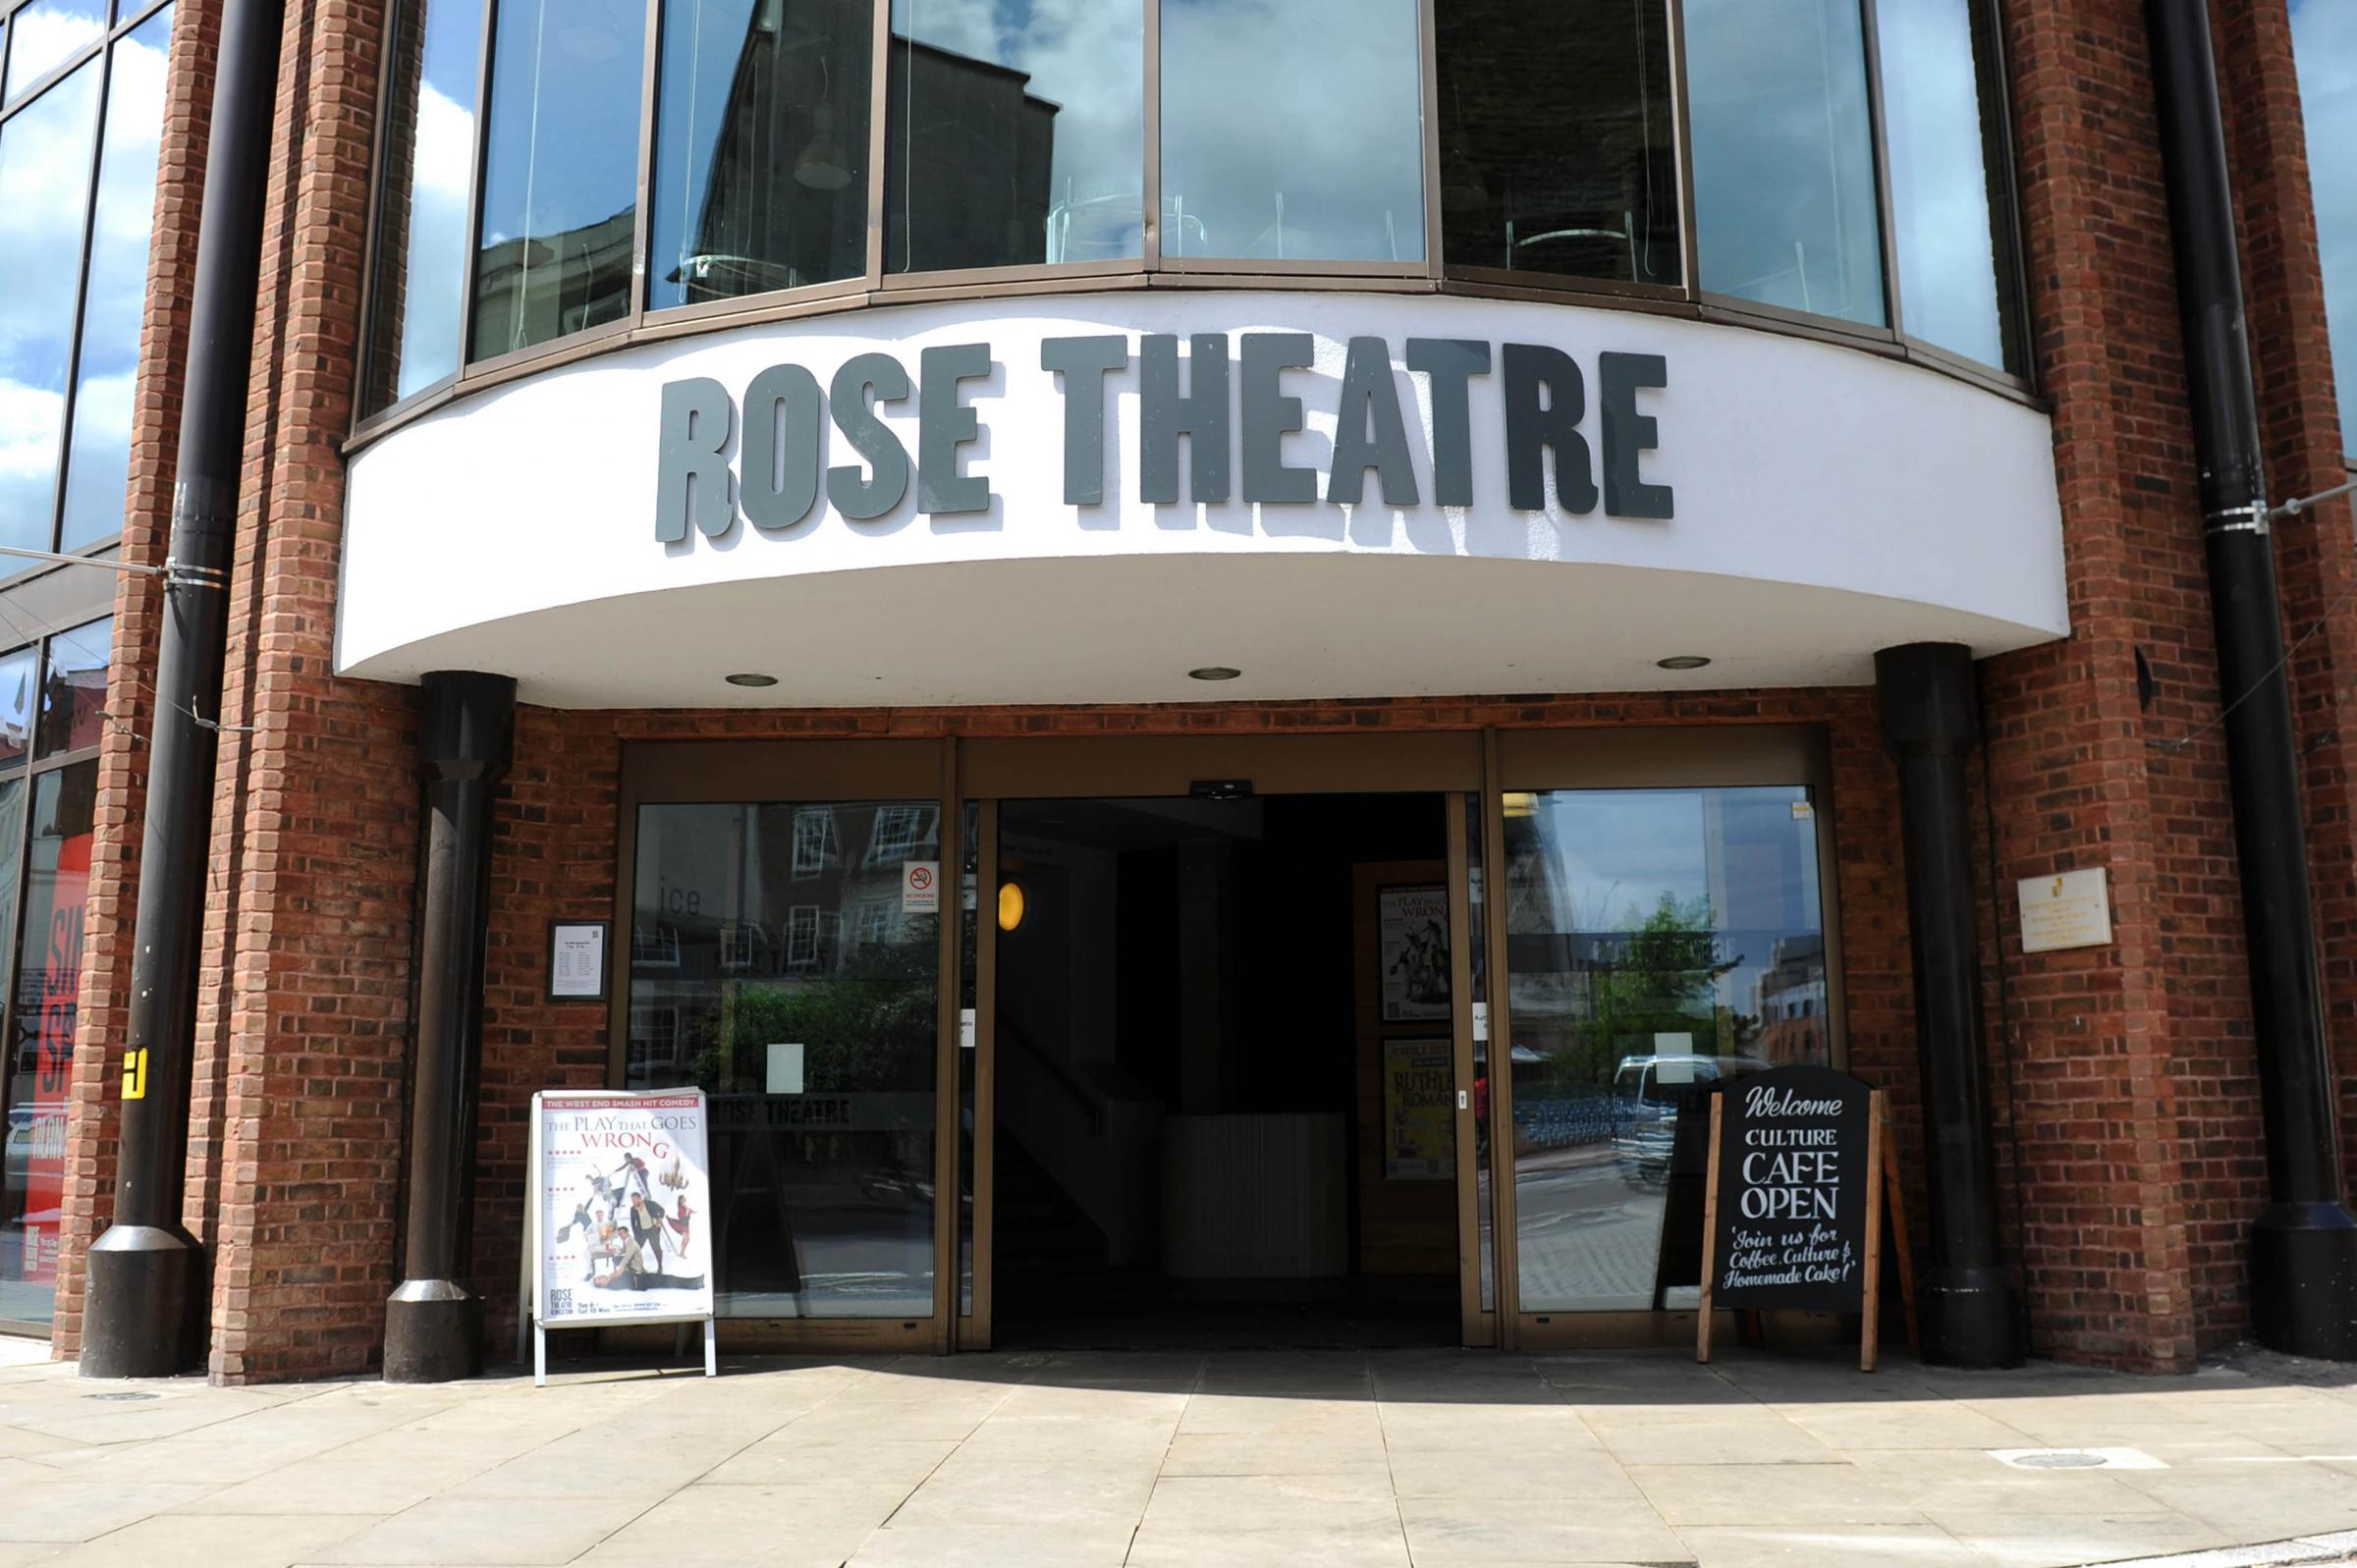 The Rose Theatre is turning ten years old.